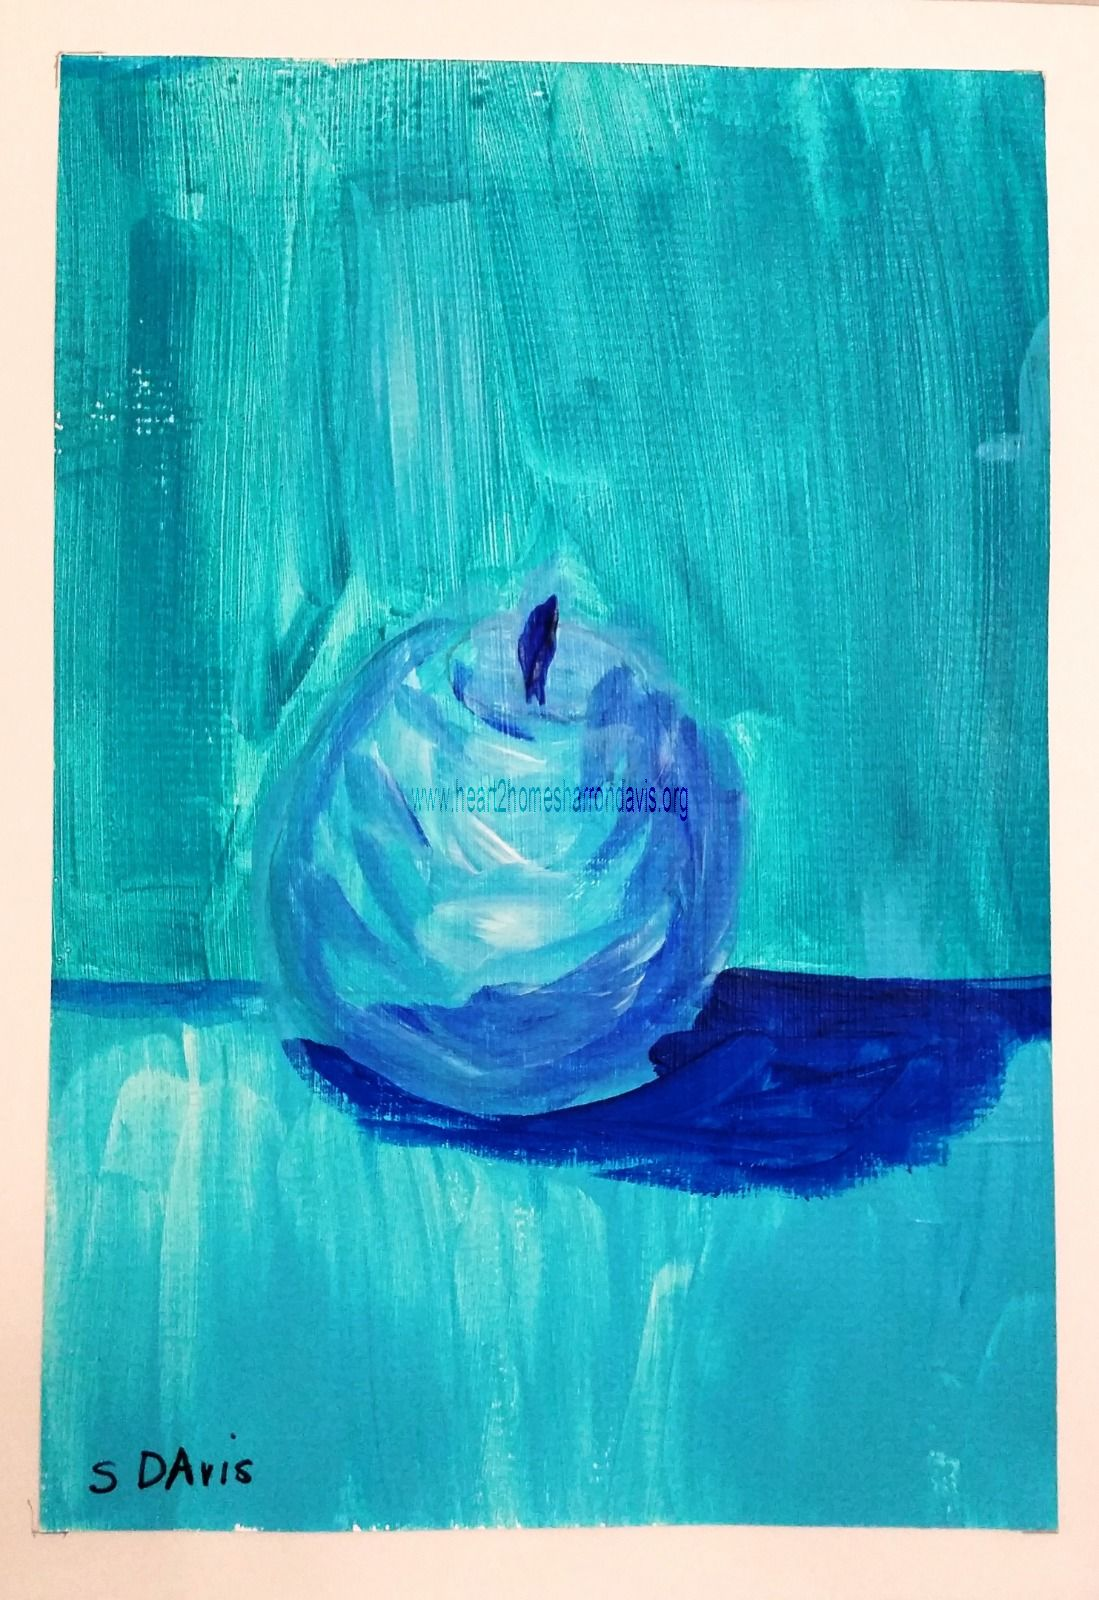 """Blue Fruit is Best series APPLE 1OF6 $50.00 EACH OR $250.00 FOR ENTIRE SET. COMES IN 12""""X16"""" MATT BOARD FRAME WITH BACKING BOARD IN CELLOPHANE SLEEVE."""